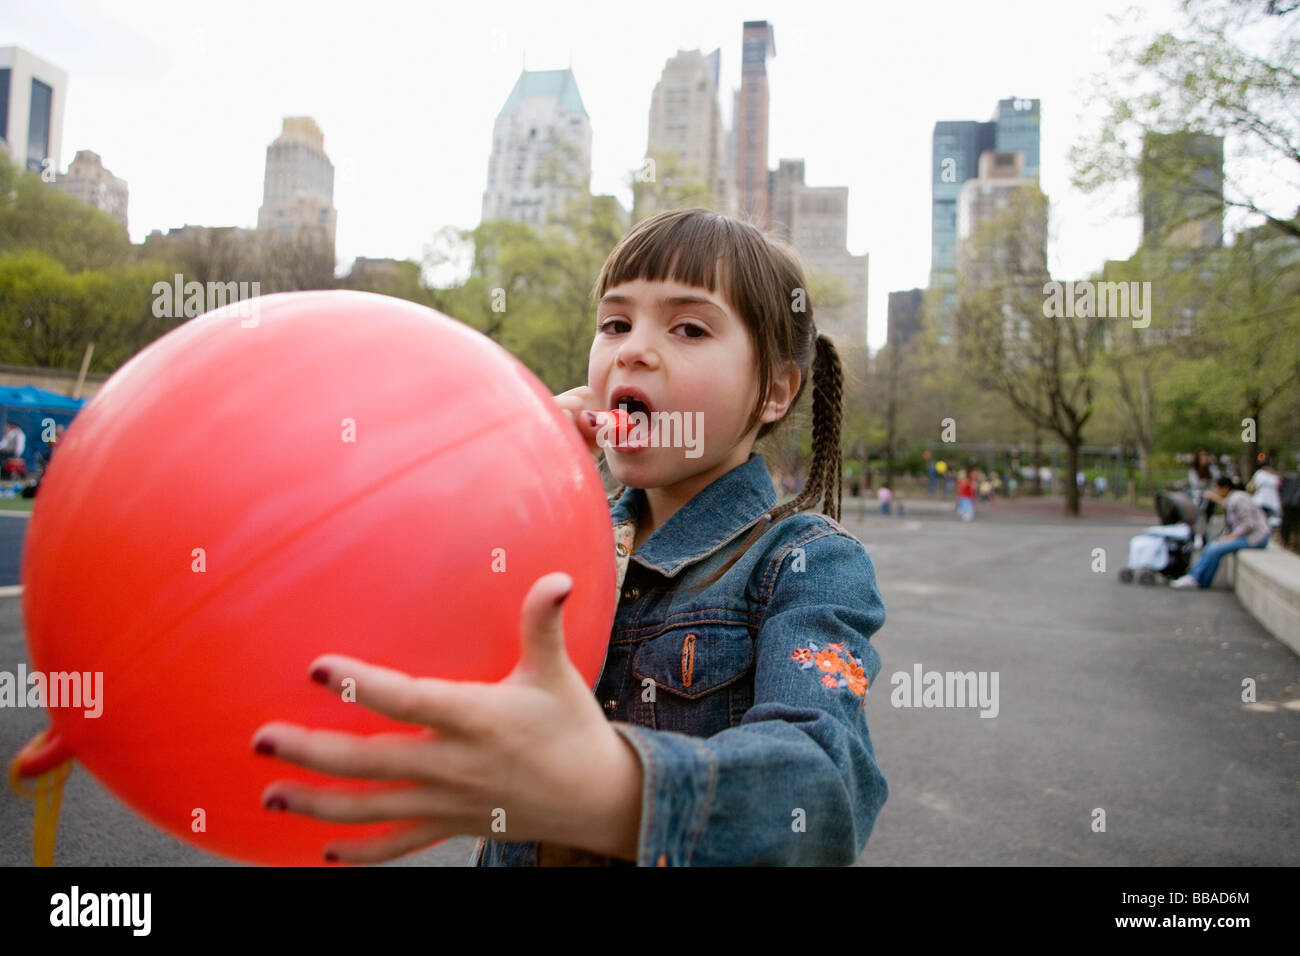 A young girl blowing up a balloon in Central Park, New York City - Stock Image